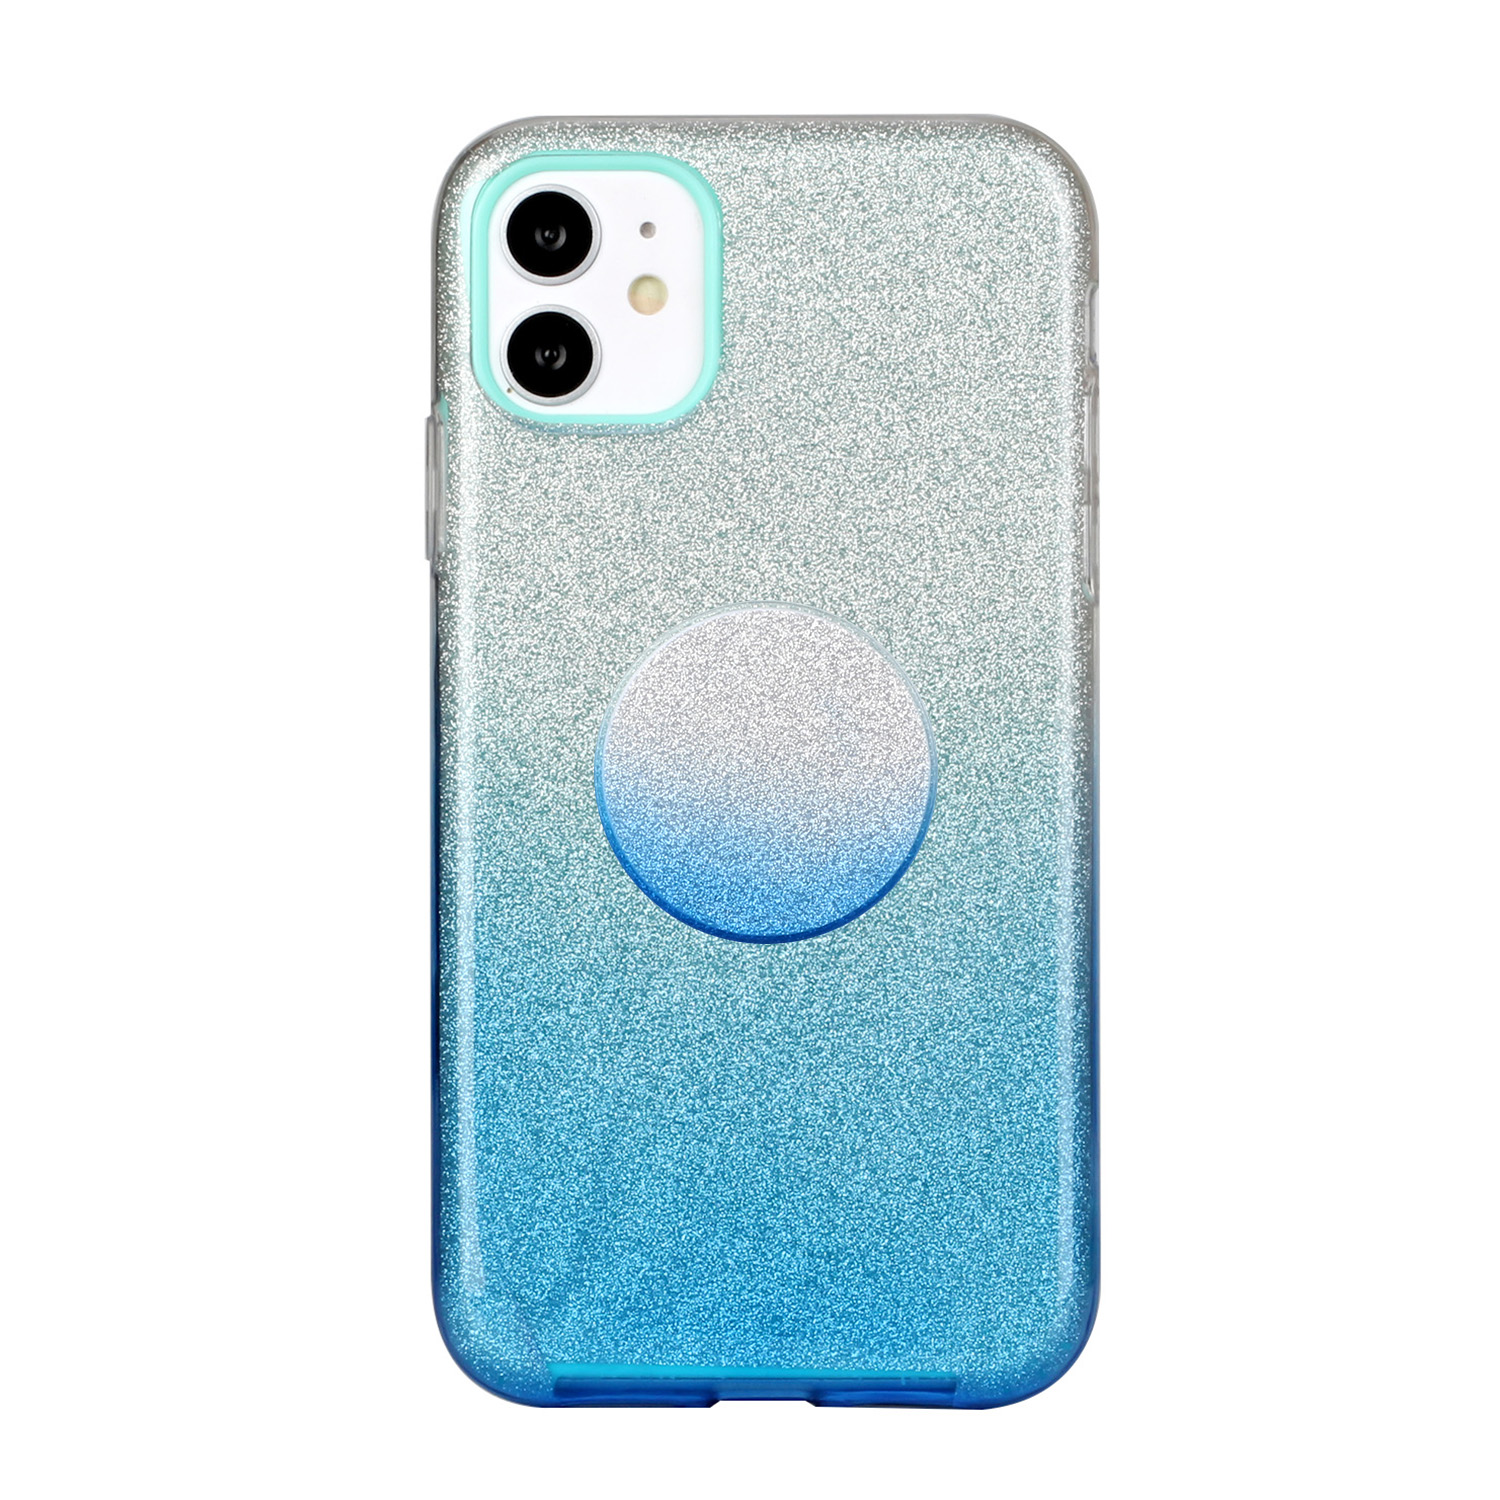 For iphone X/XS/XR/XS MAX/11/11 pro MAX Phone Case Gradient Color Glitter Powder Phone Cover with Airbag Bracket blue